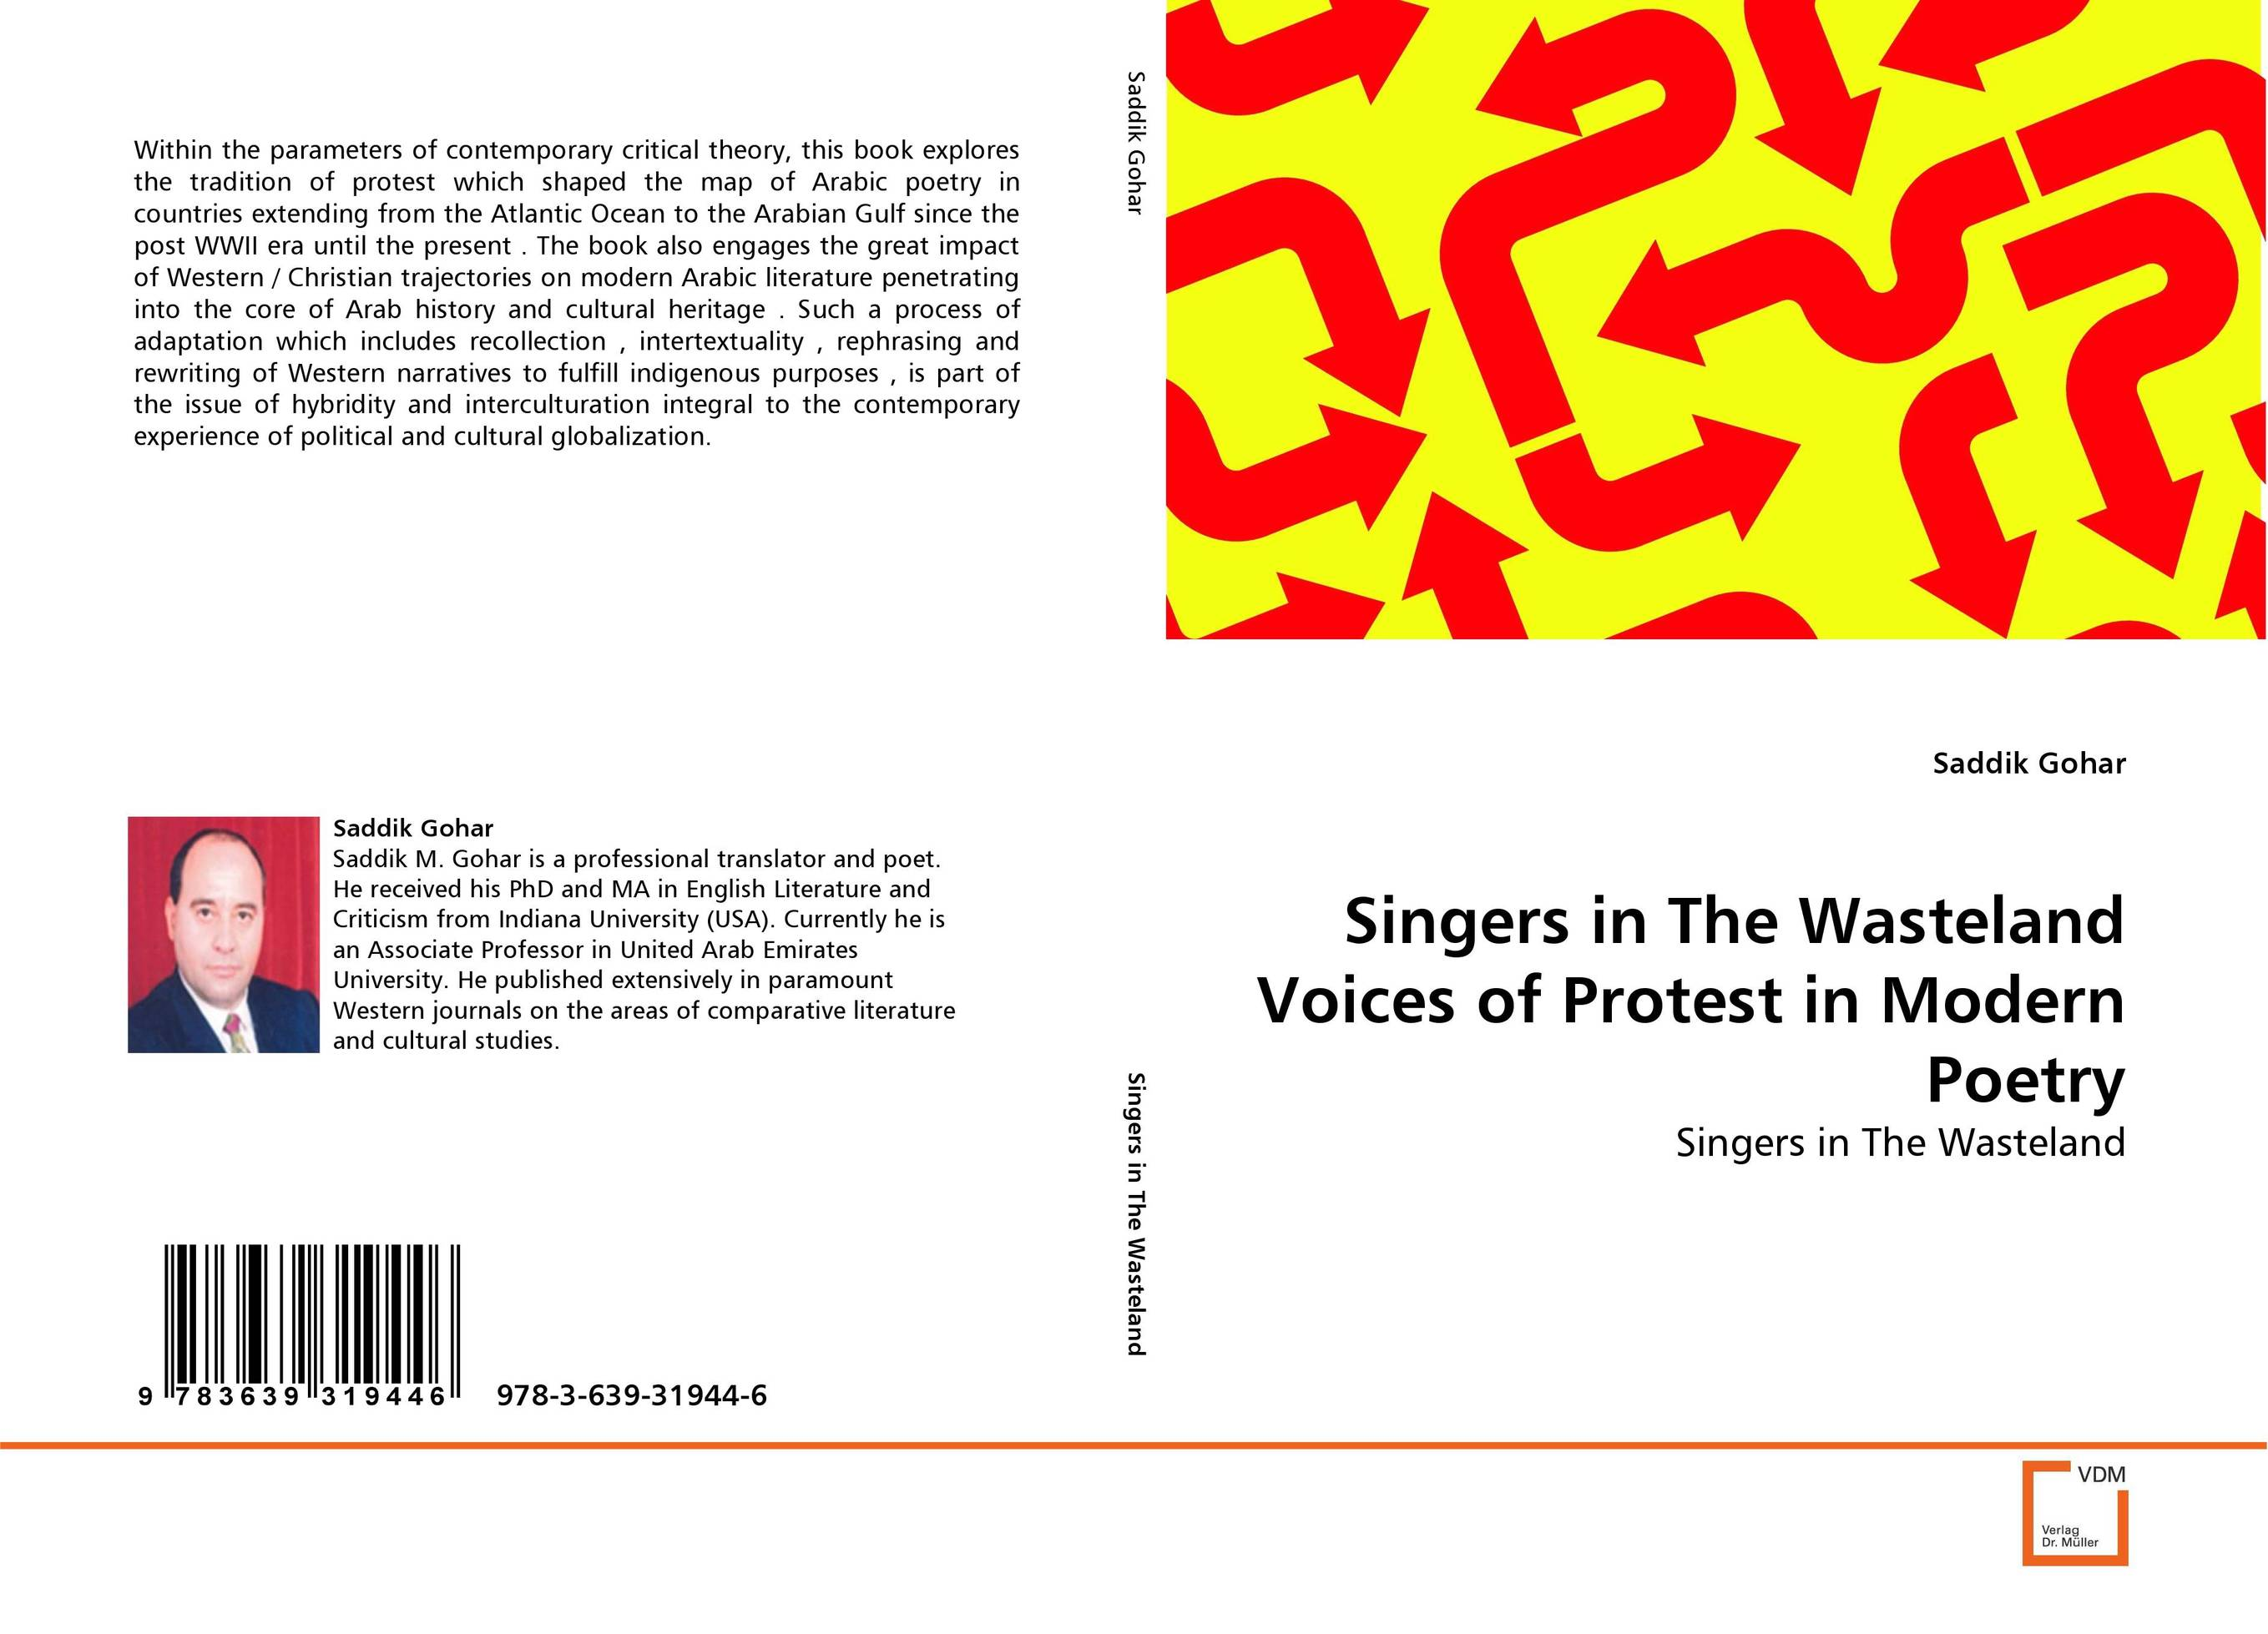 Singers in The Wasteland Voices of Protest in Modern Poetry аксессуары in akustik cd great voices 0167501 1